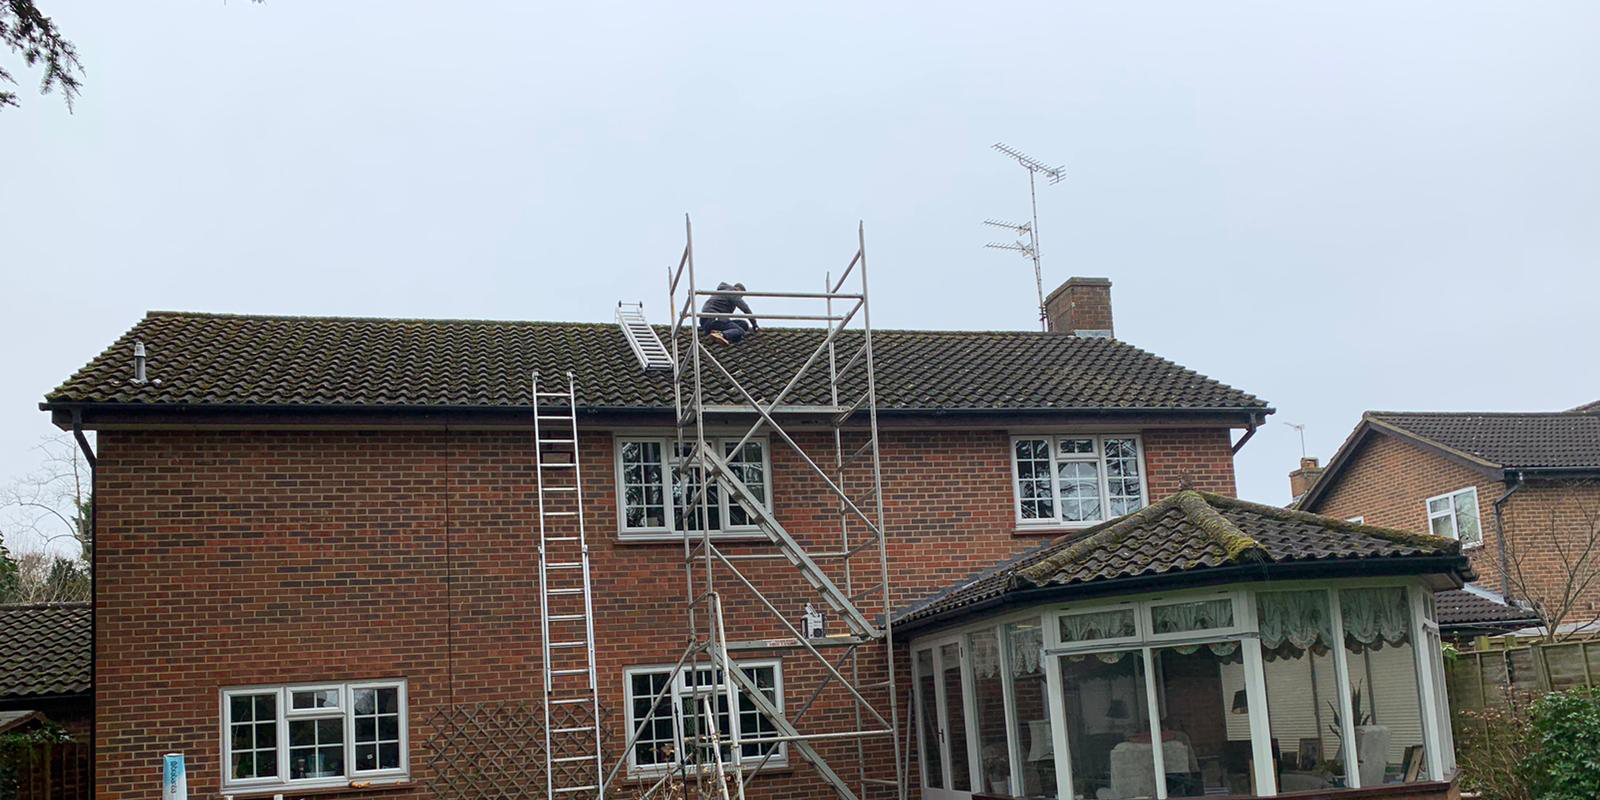 Roofing Services in Sunbury-on-Thames